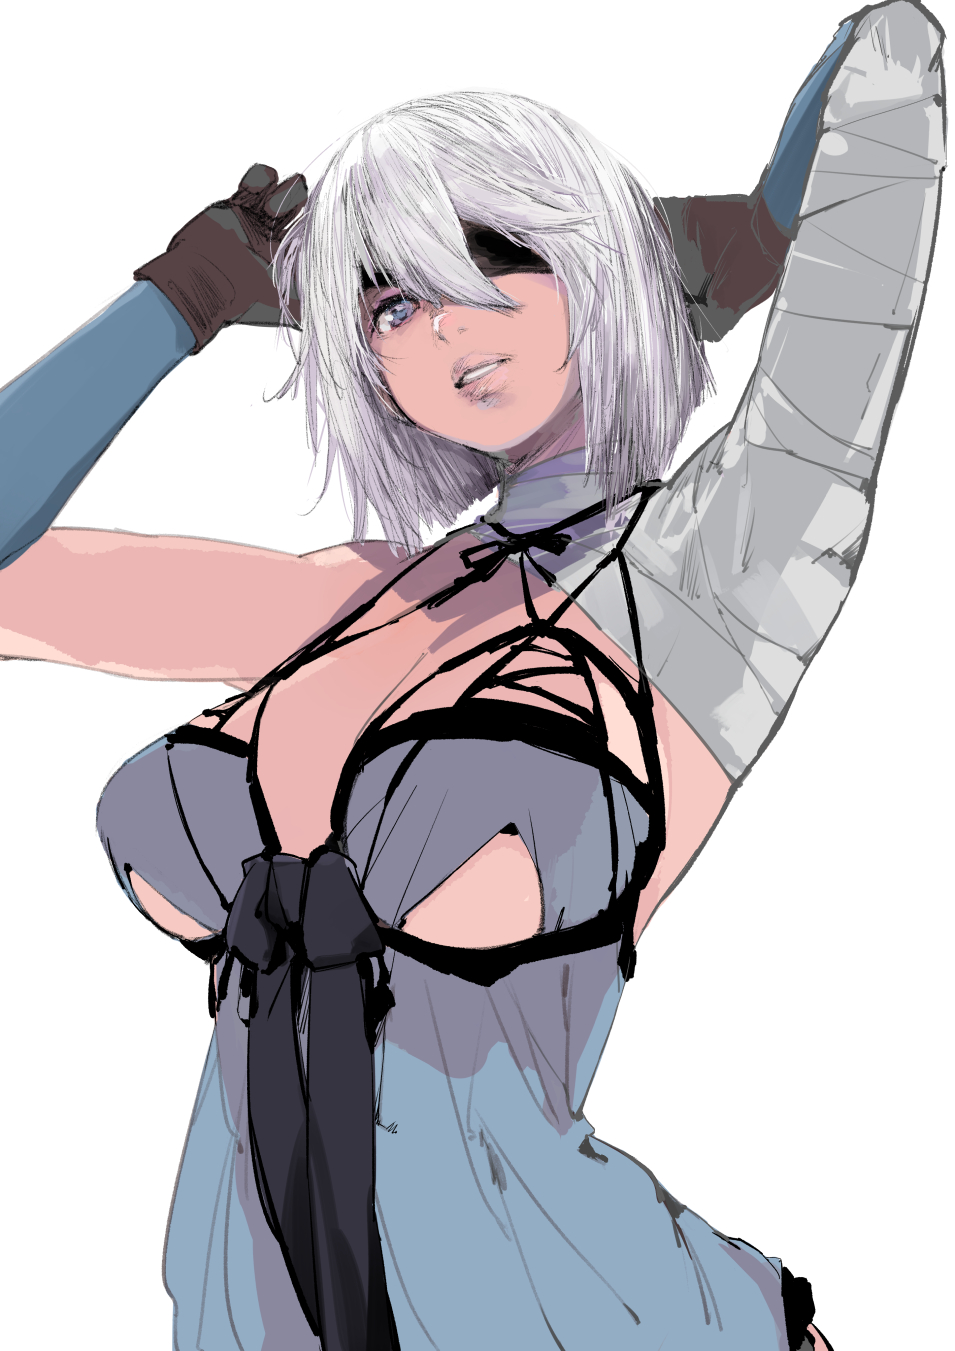 1girl arms_up bandaged_arm bandages black_bow blue_eyes bow breasts brown_gloves gloves hair_between_eyes highres kiriyama nier_(series) parted_lips short_hair simple_background solo white_background white_hair